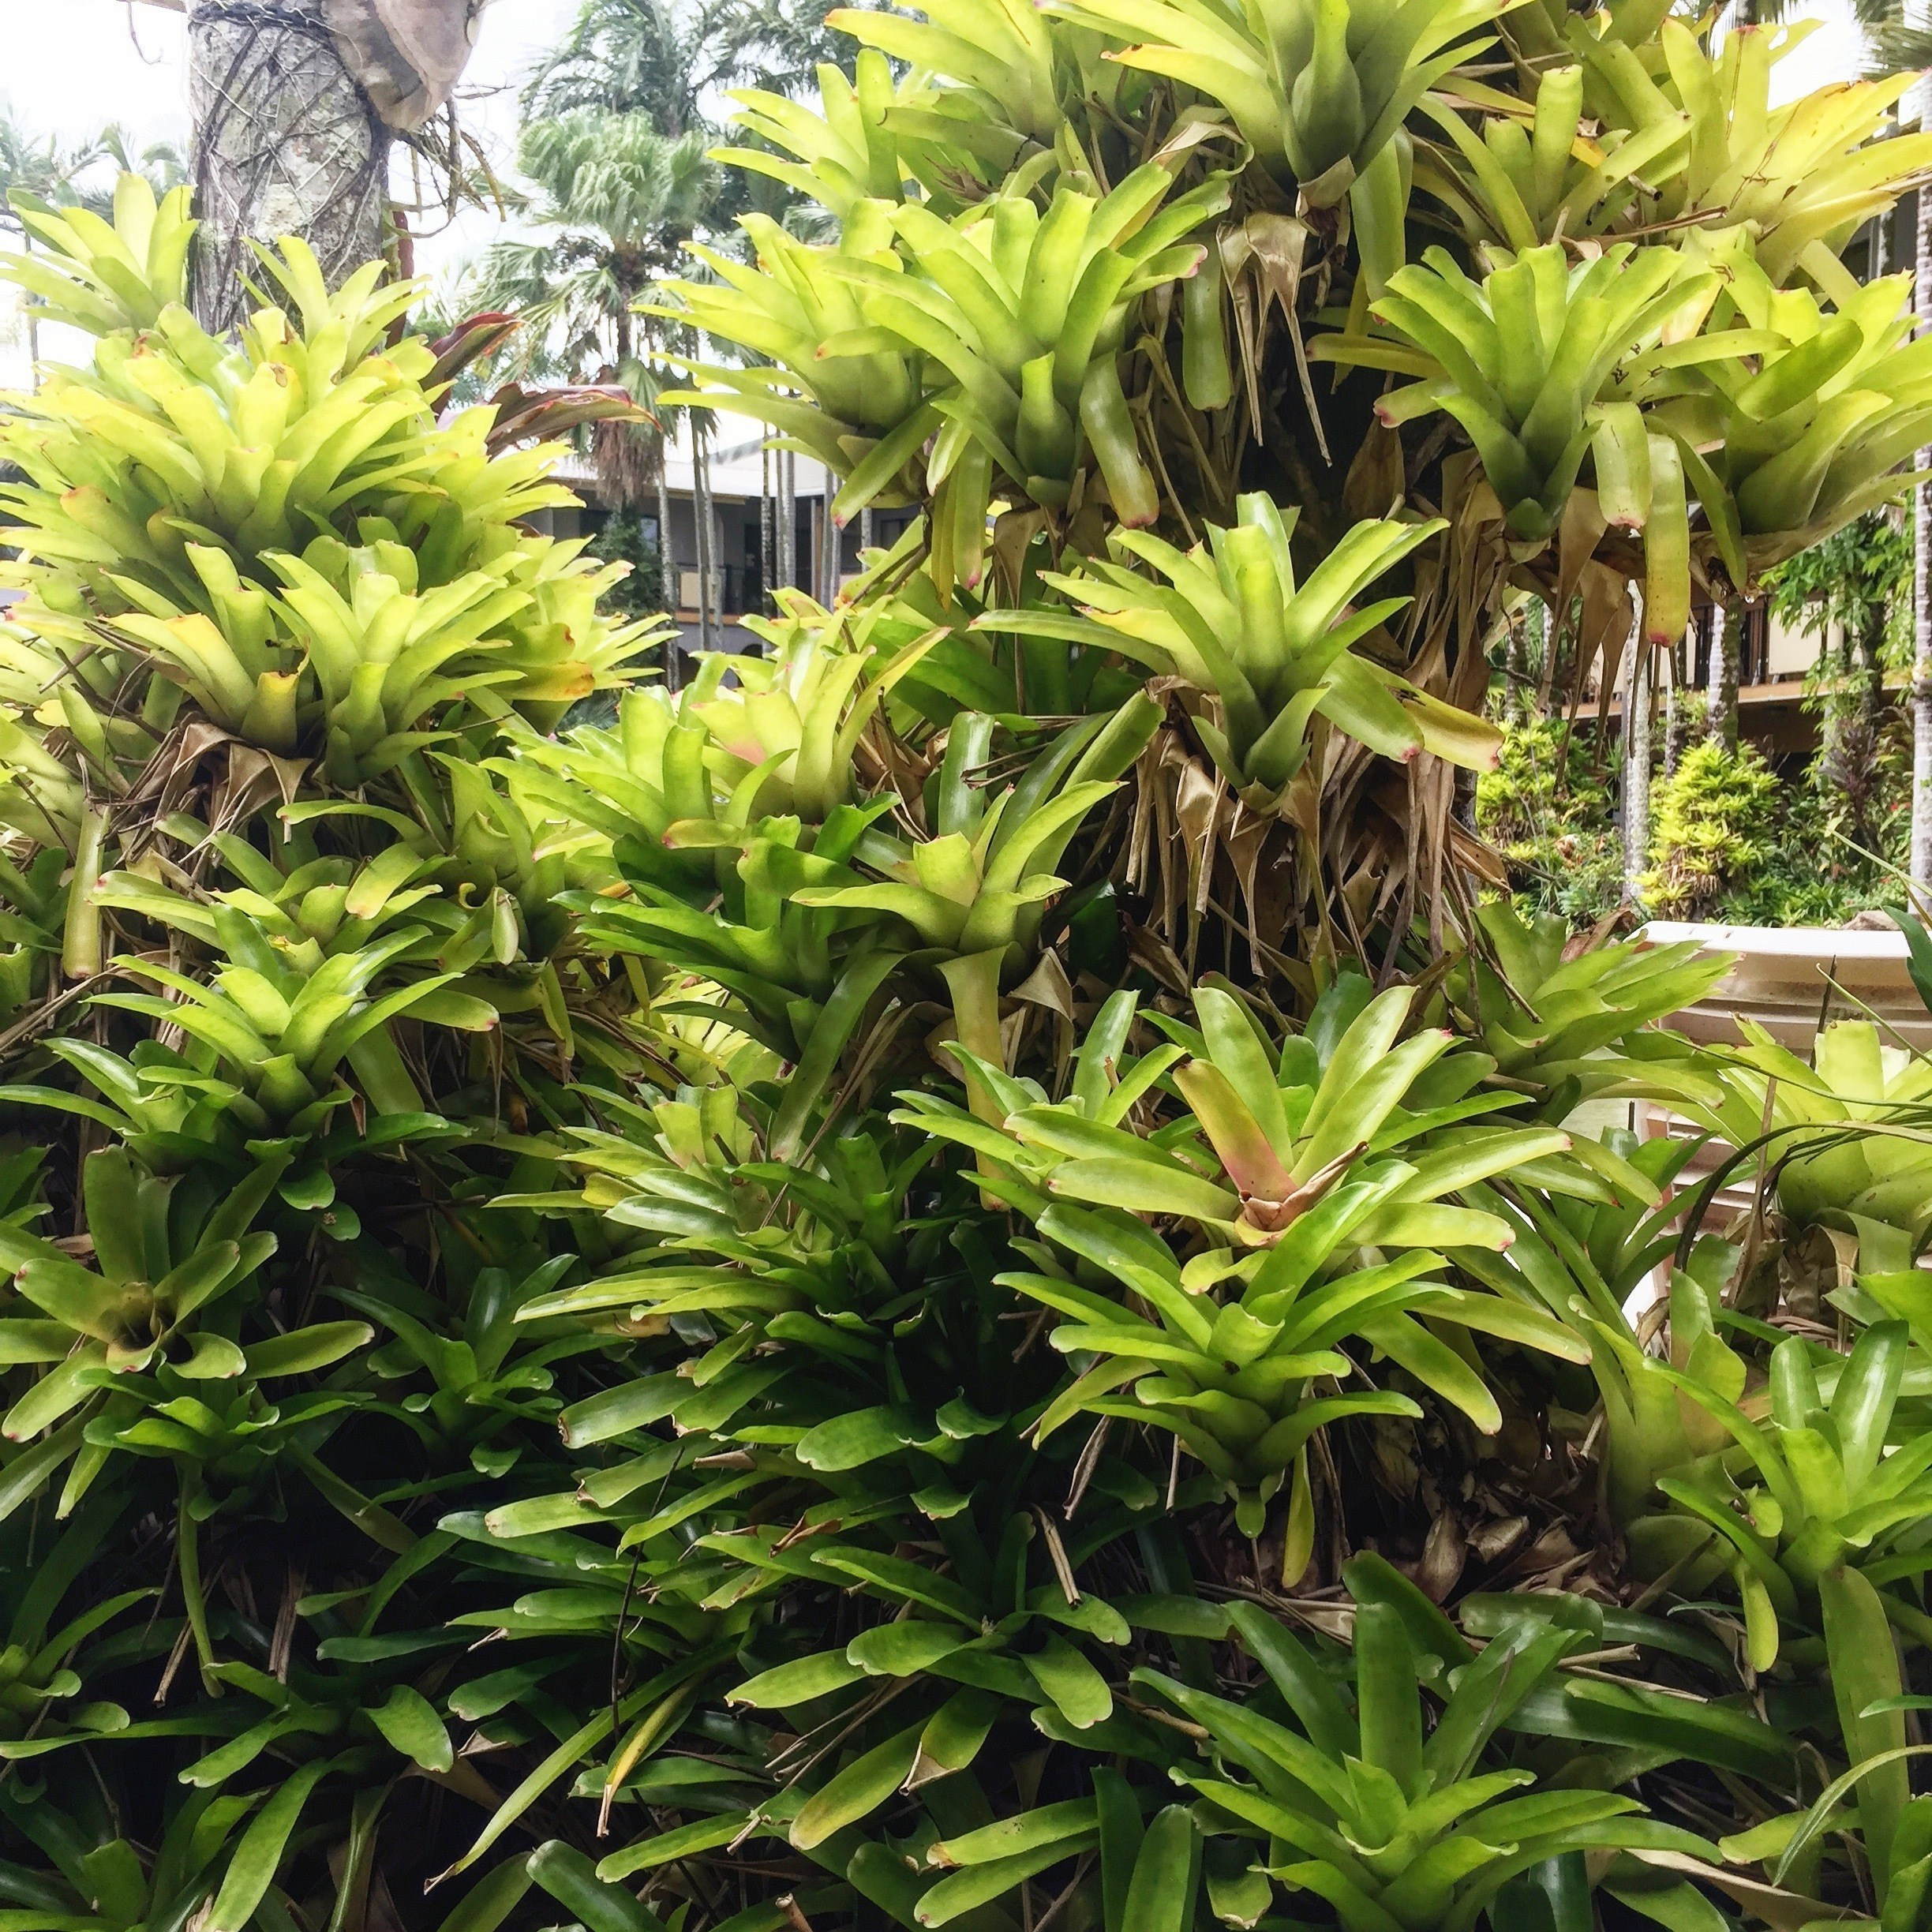 Bromeliads are epiphytes all over palm trees in Cairns and surrounds